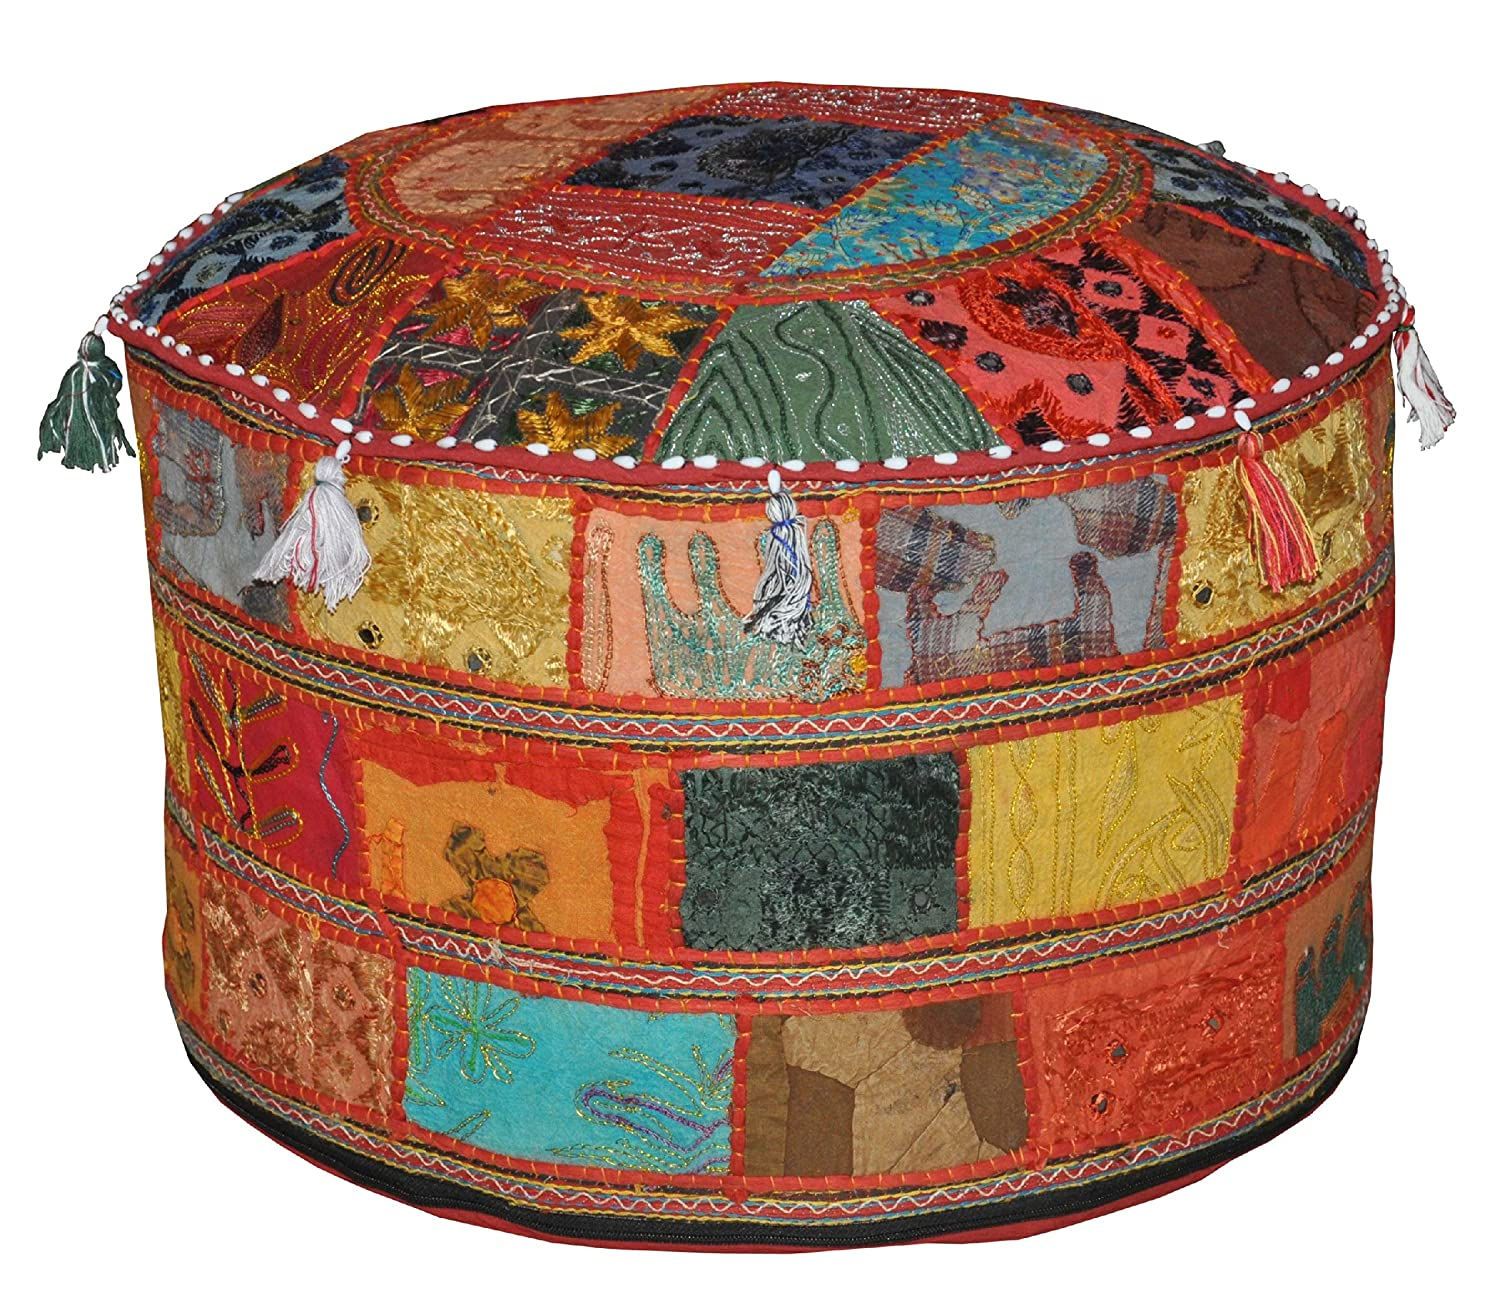 Marubhumi India Floor cotton Ottoman Embellished with Patchwork and Embroidery Work Cushion Cover AX-AY-ABHI-66442